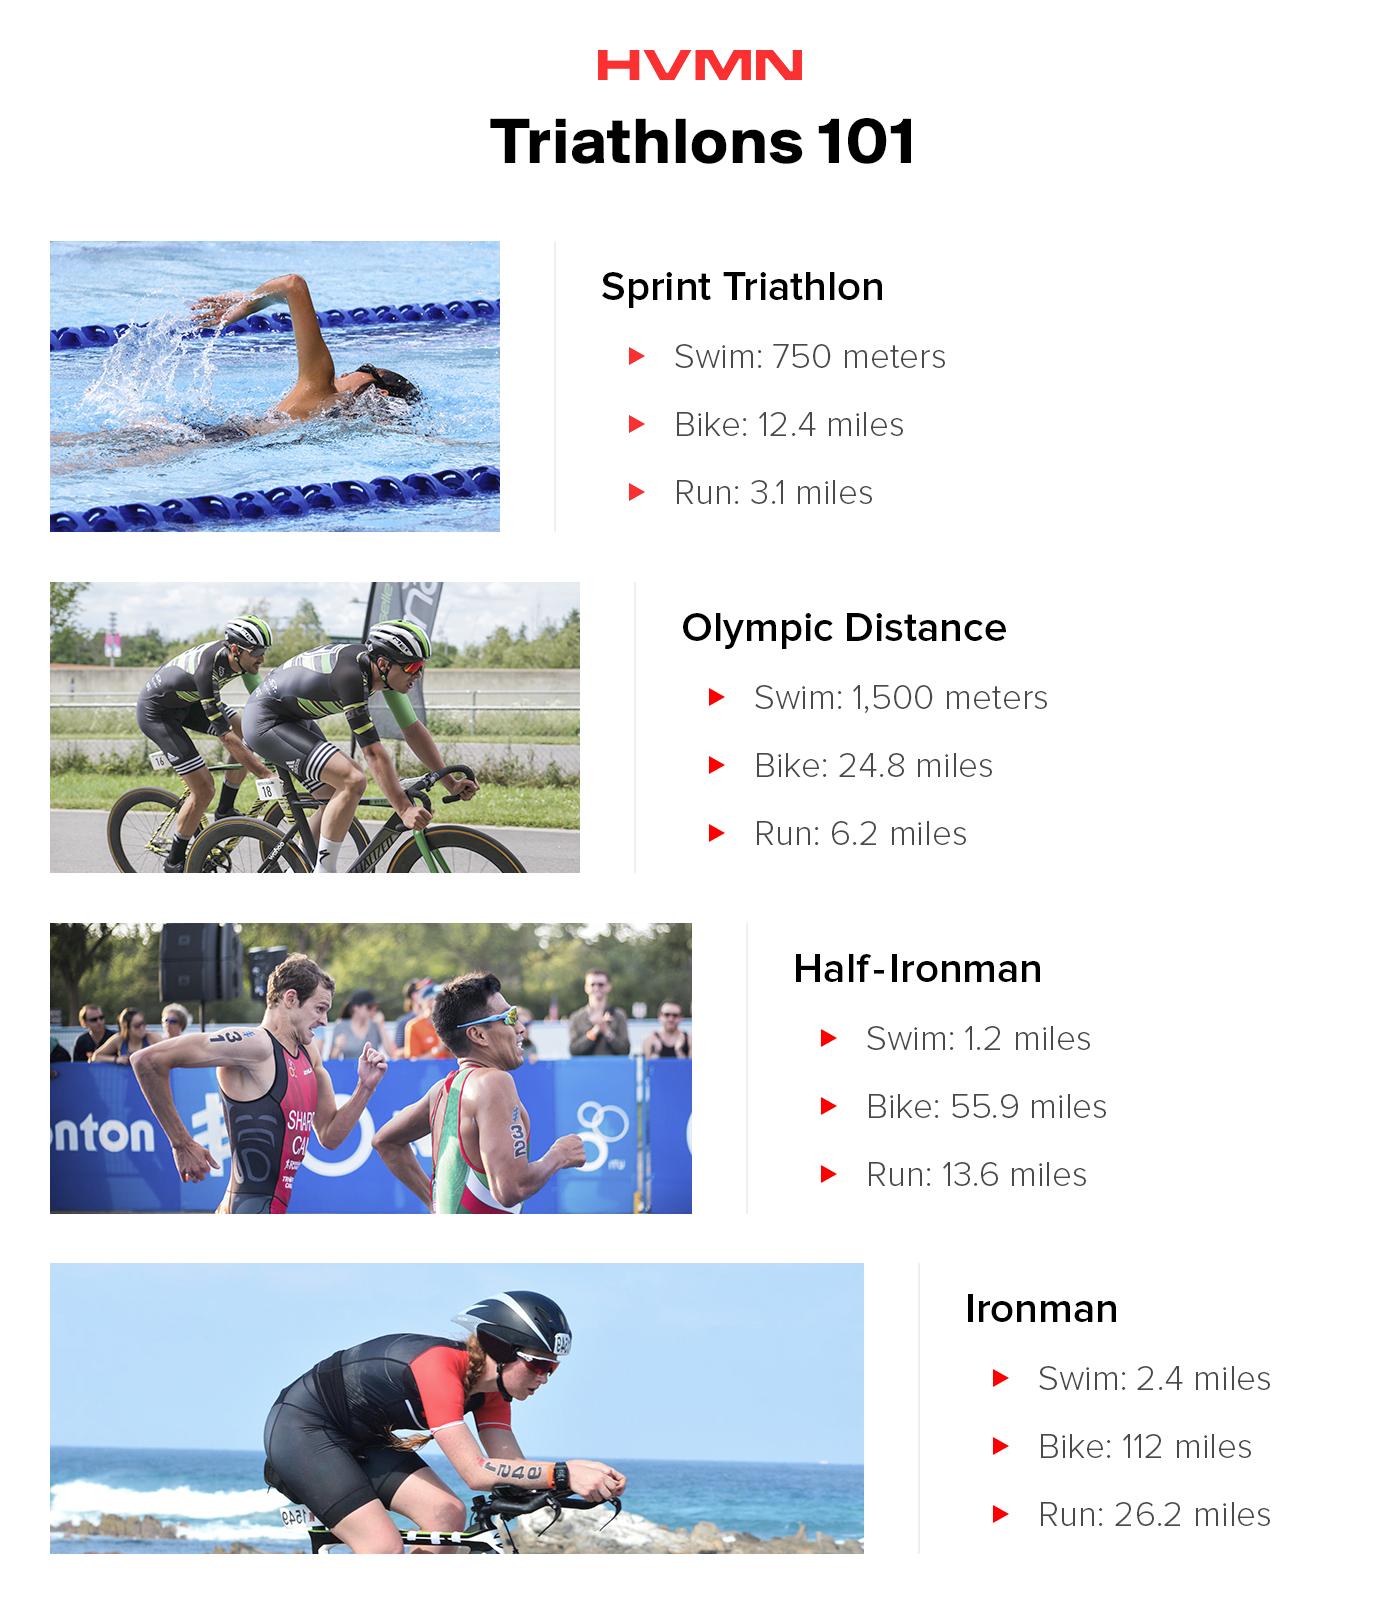 A swimmer, two bikers, two runners and another biker showing the differences between the triathlon lengths